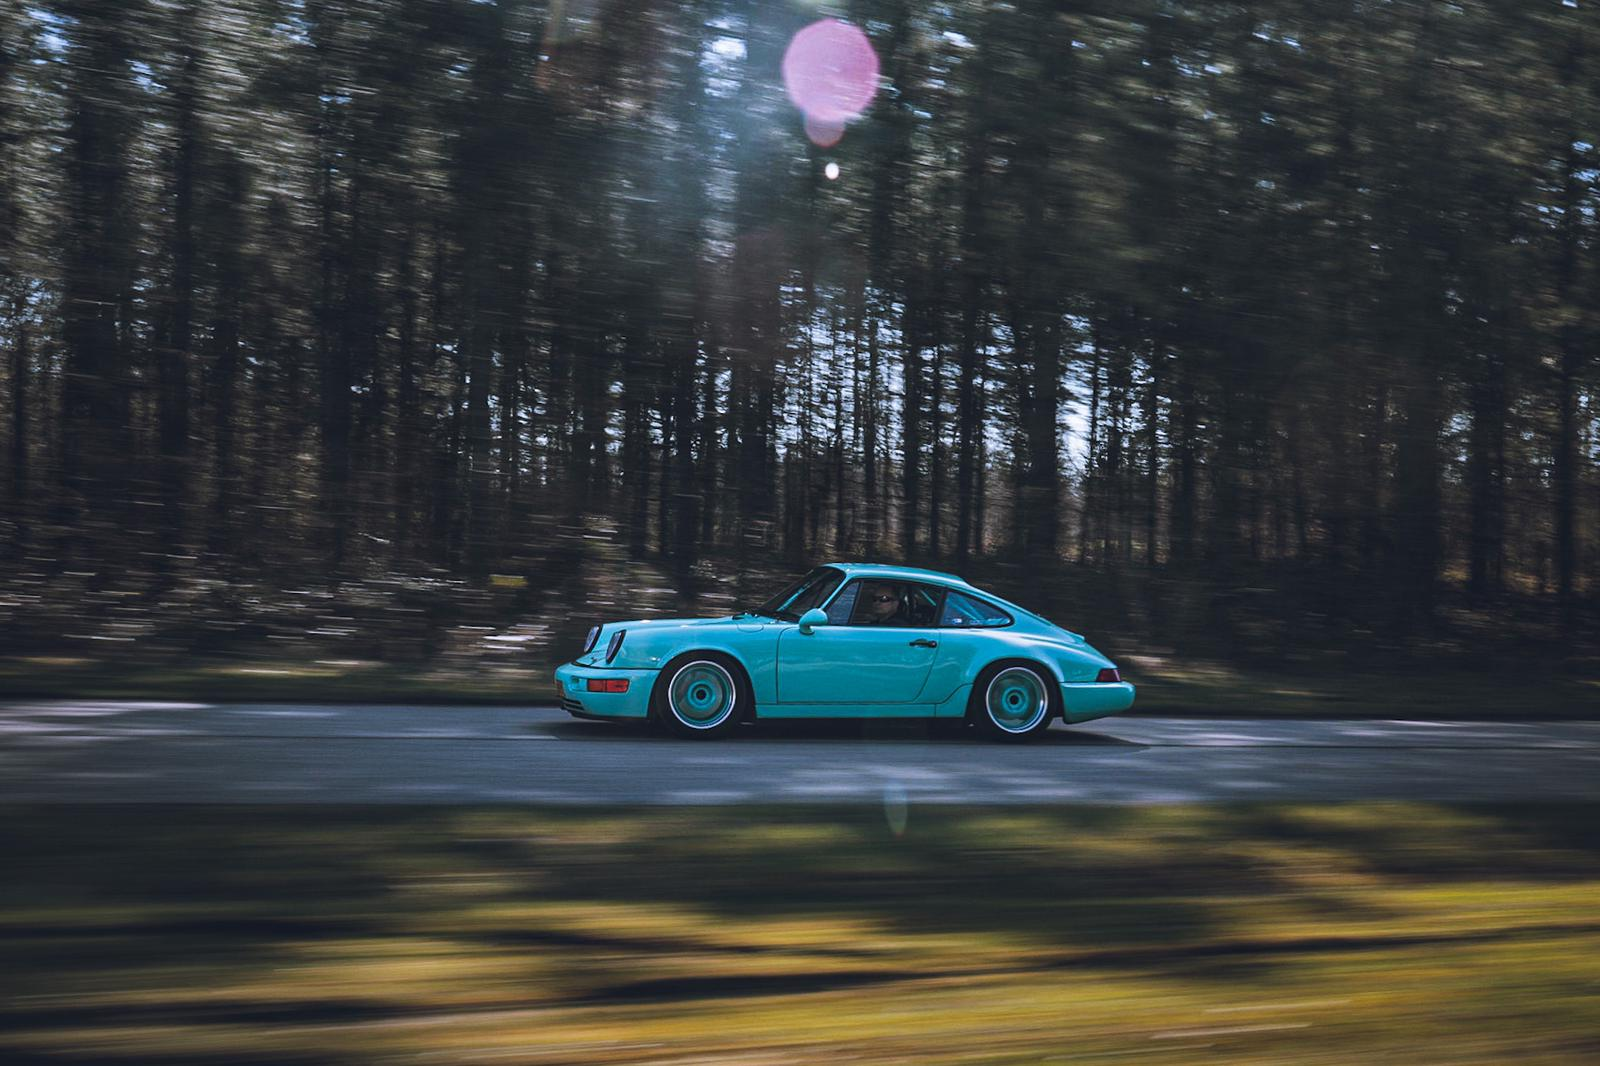 Roadr Stories - The Porsche 964